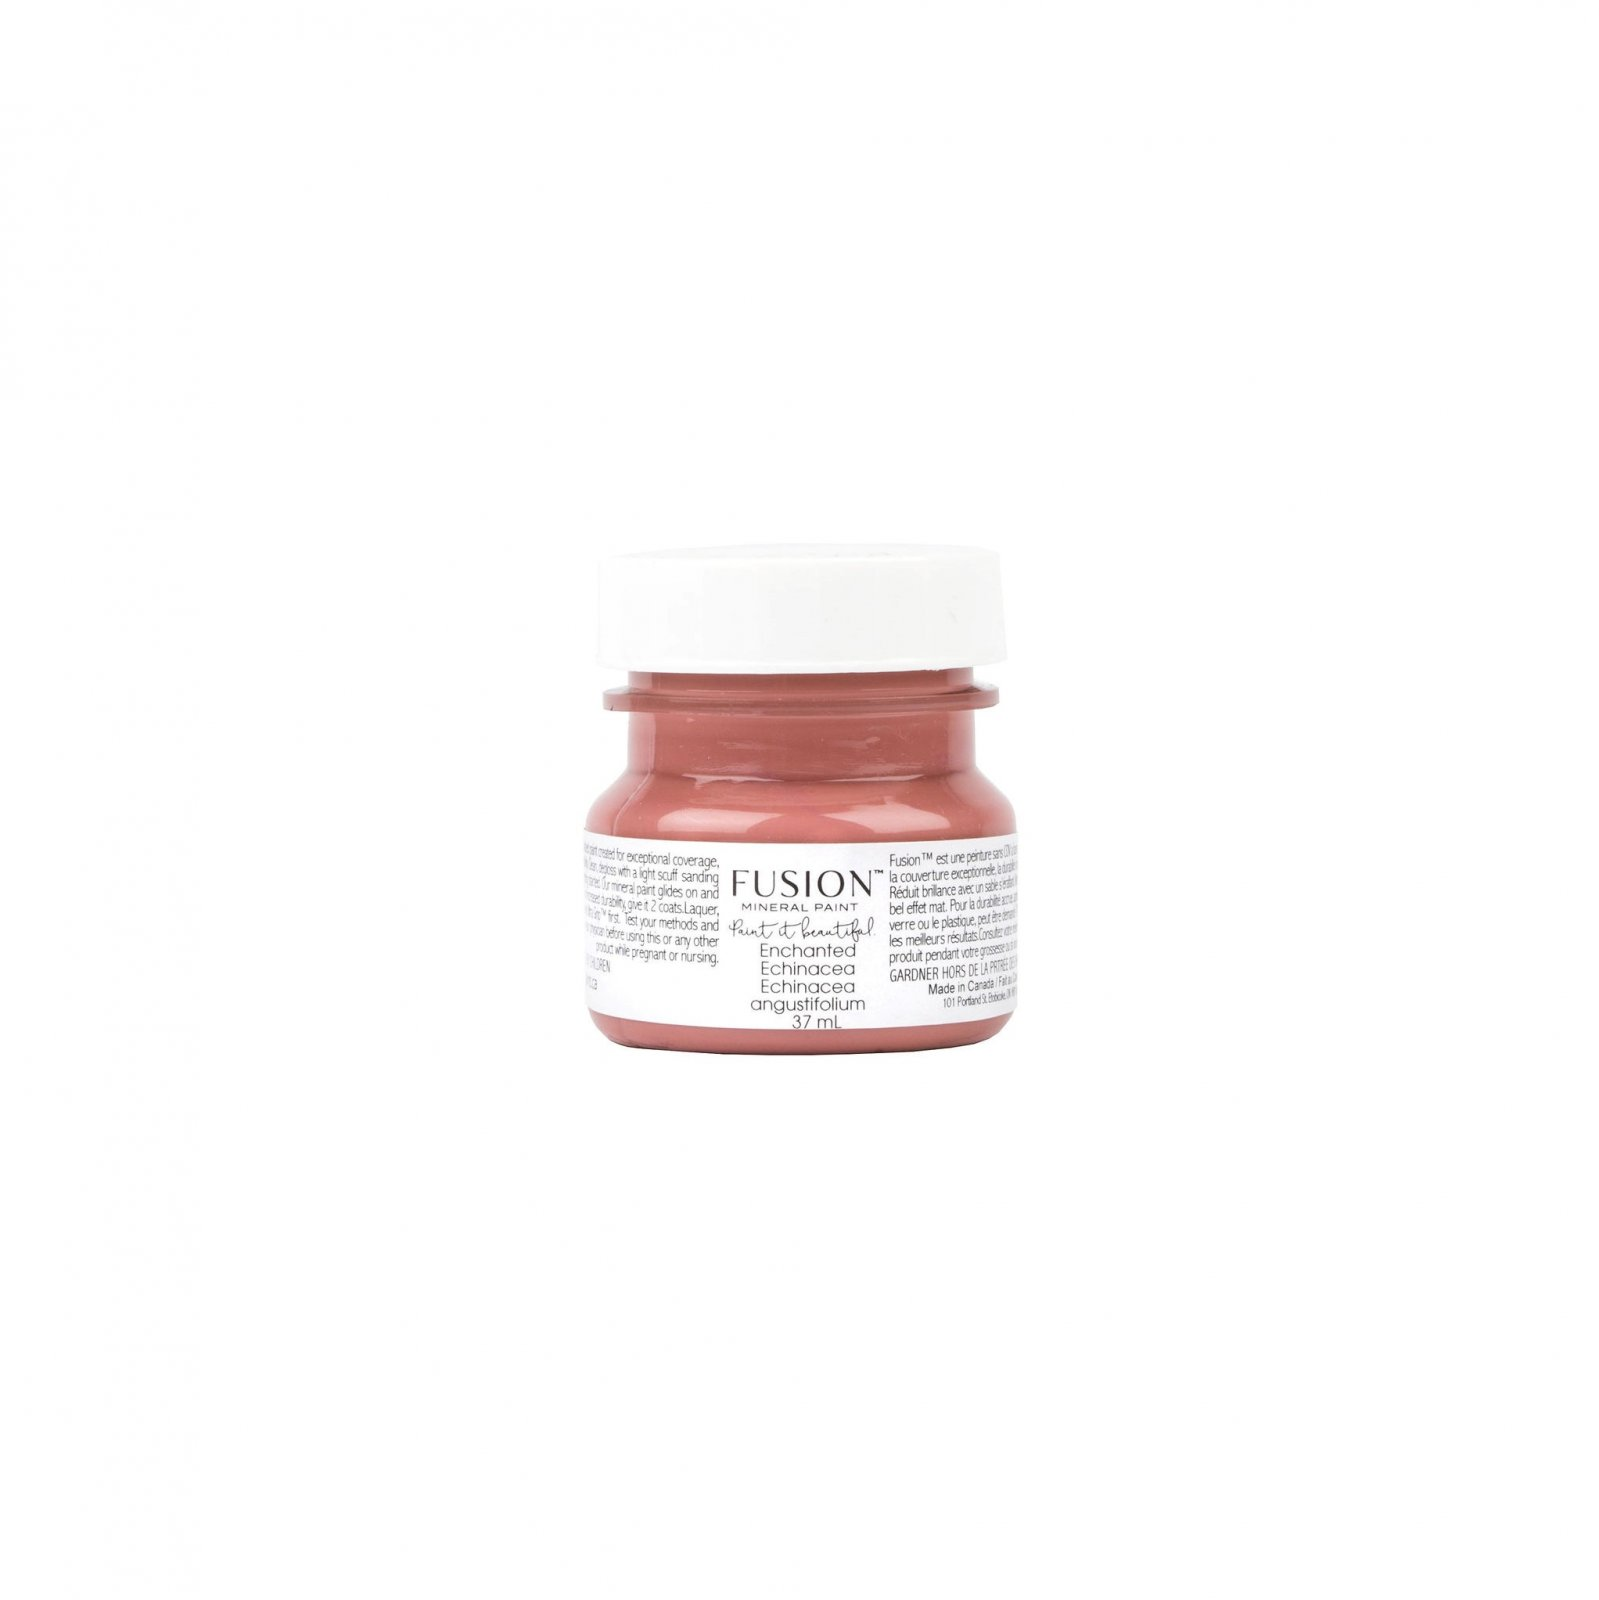 Enchanted Echinacea Tester Fusion Mineral Paint